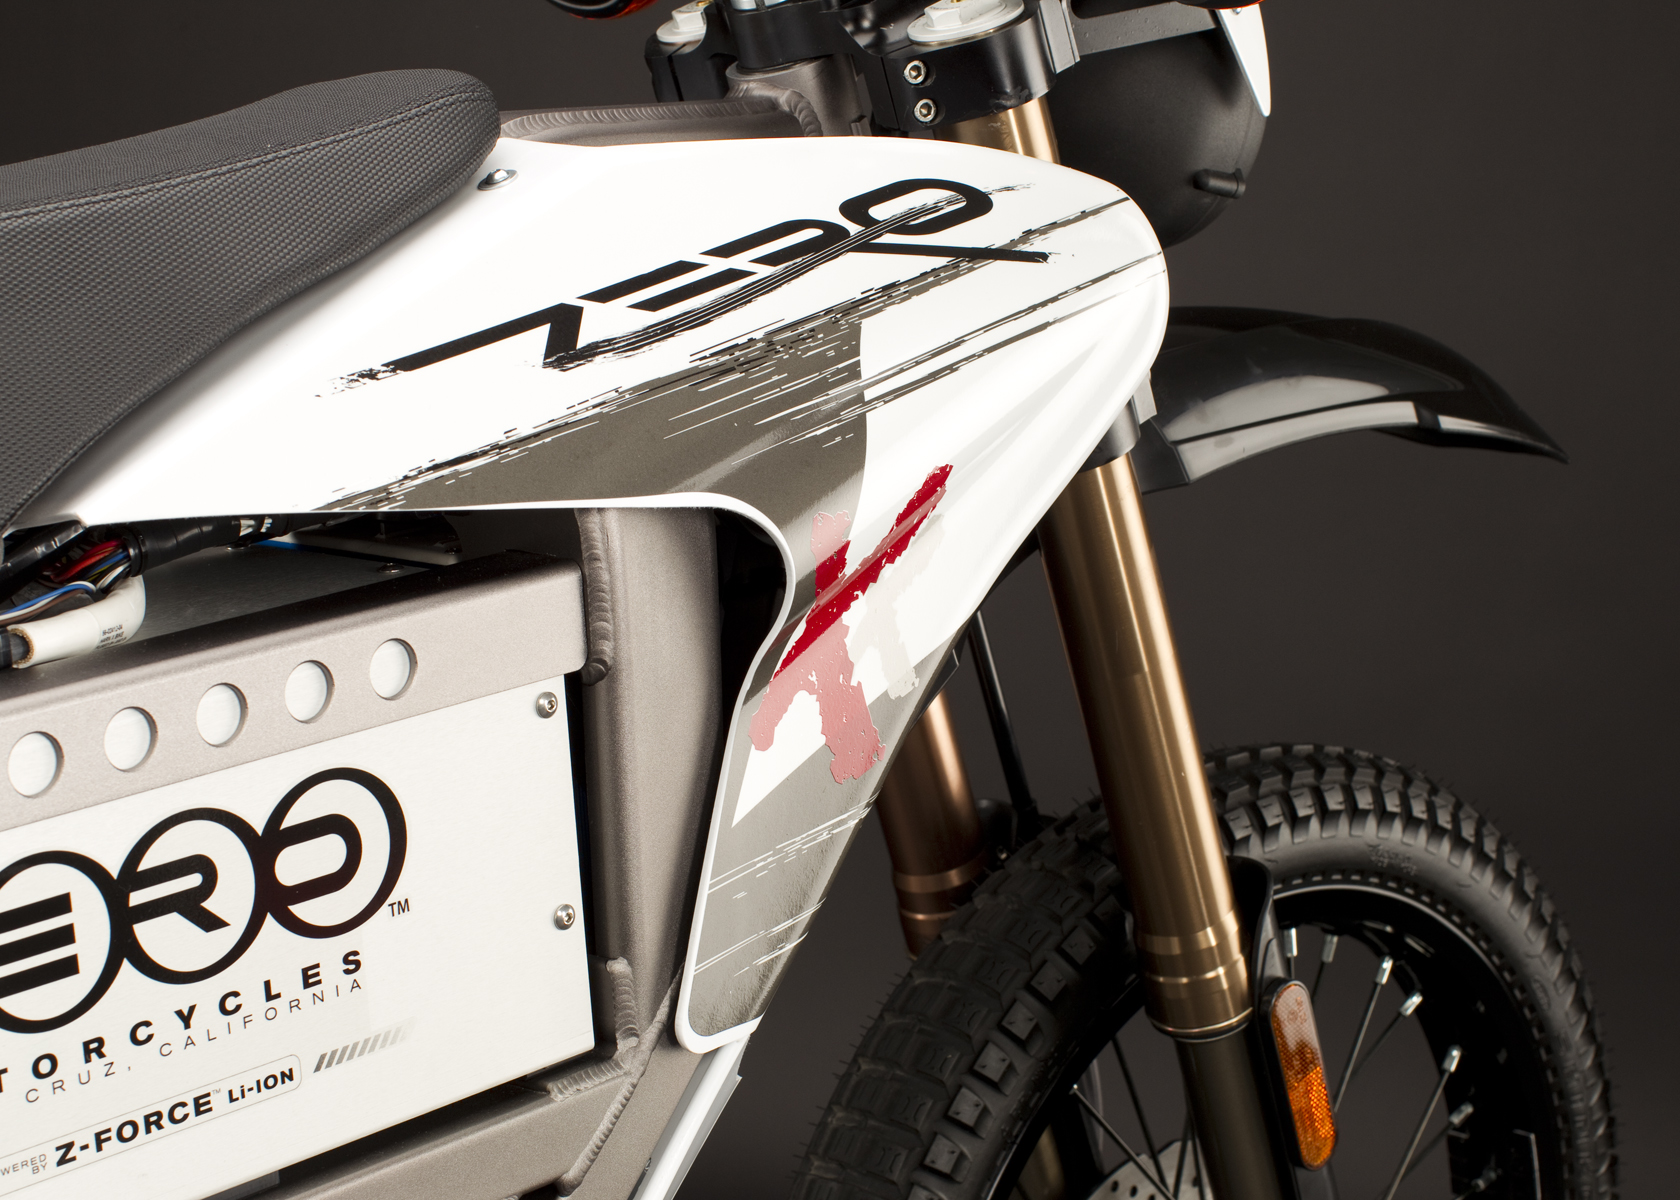 2011 Zero X Electric Motorcycle: Front Fork